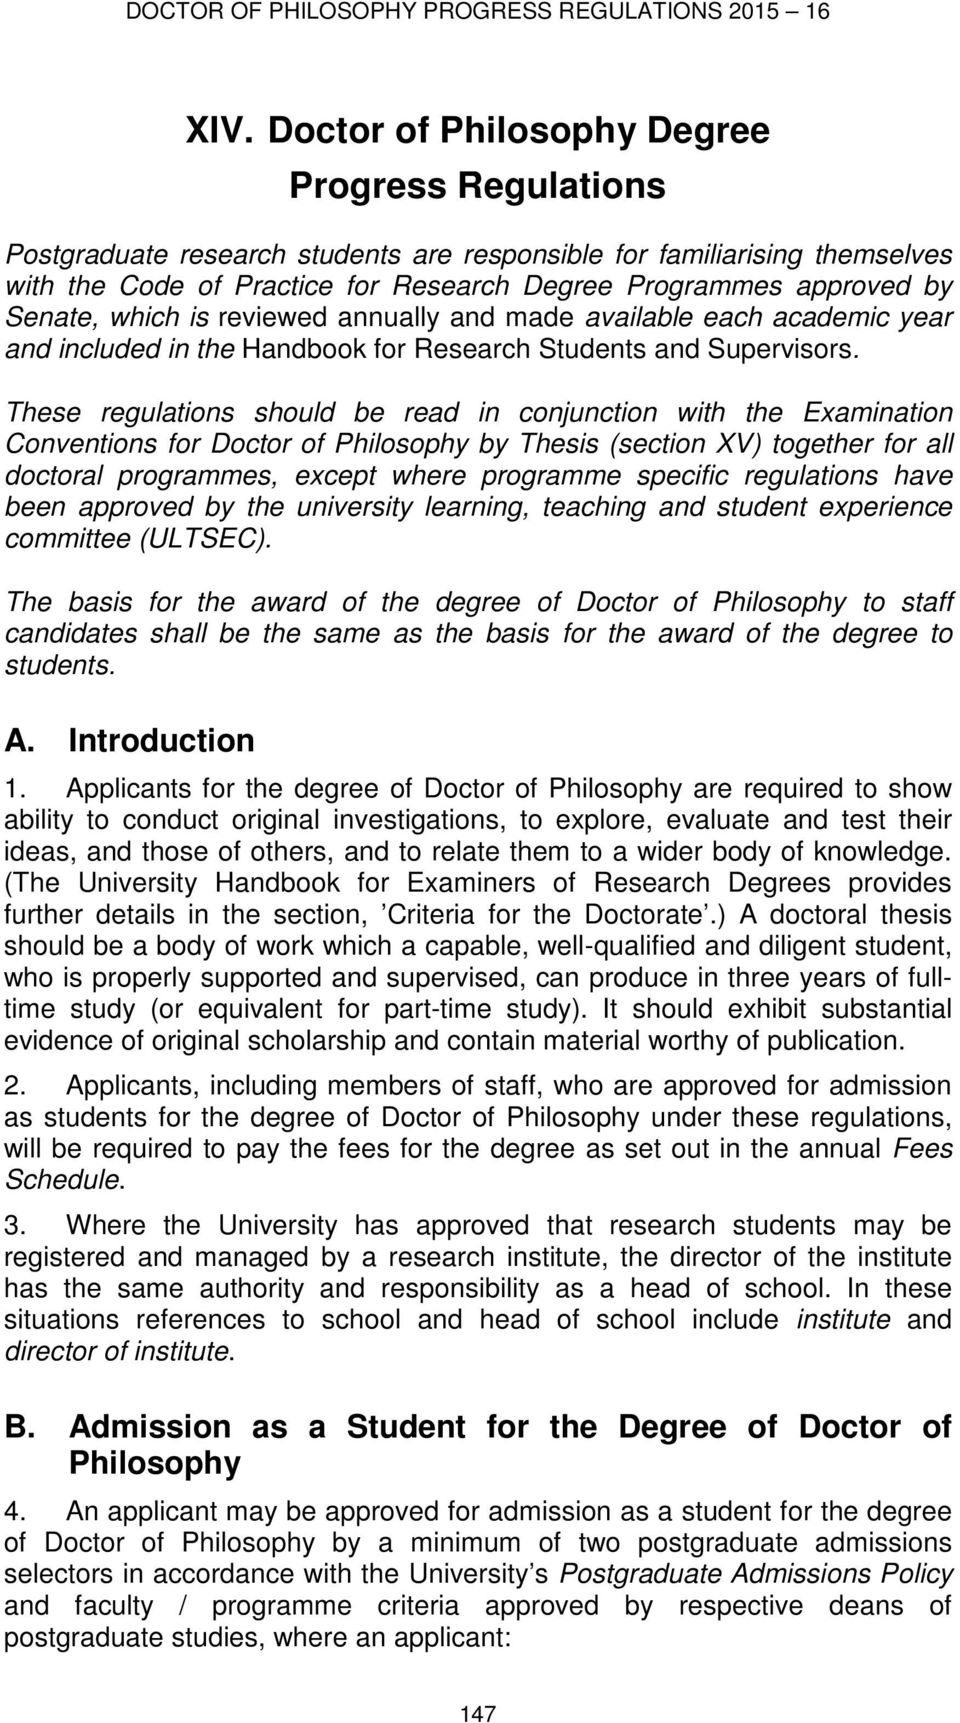 These regulations should be read in conjunction with the Examination Conventions for Doctor of Philosophy by Thesis (section XV) together for all doctoral programmes, except where programme specific